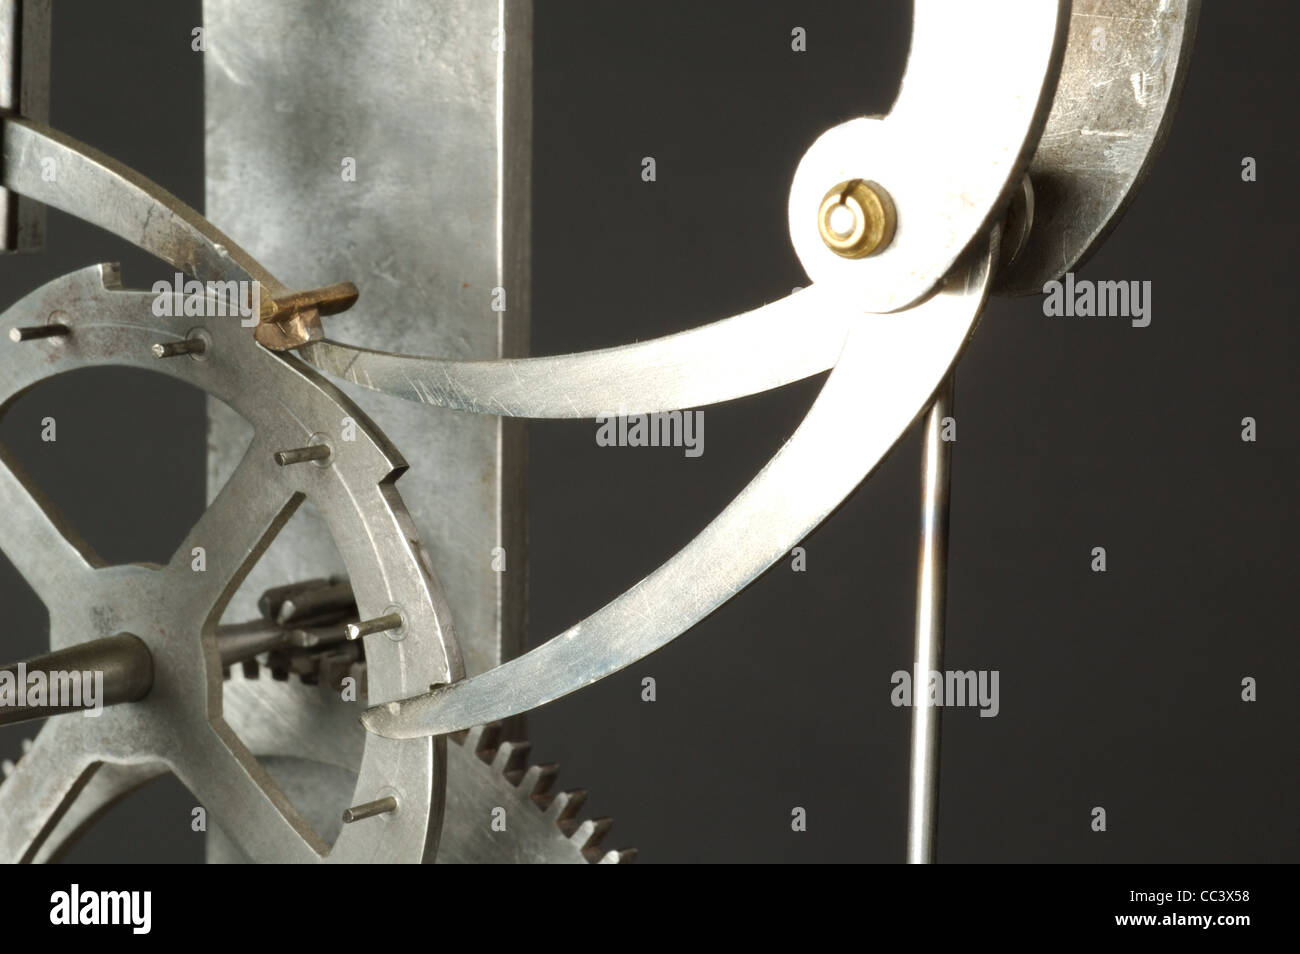 Watch. Replica Of A Contemporary Grandfather Clock Built And Designed By Galileo Gali Her. Cm.34 Height, Depth 8Cm, - Stock Image